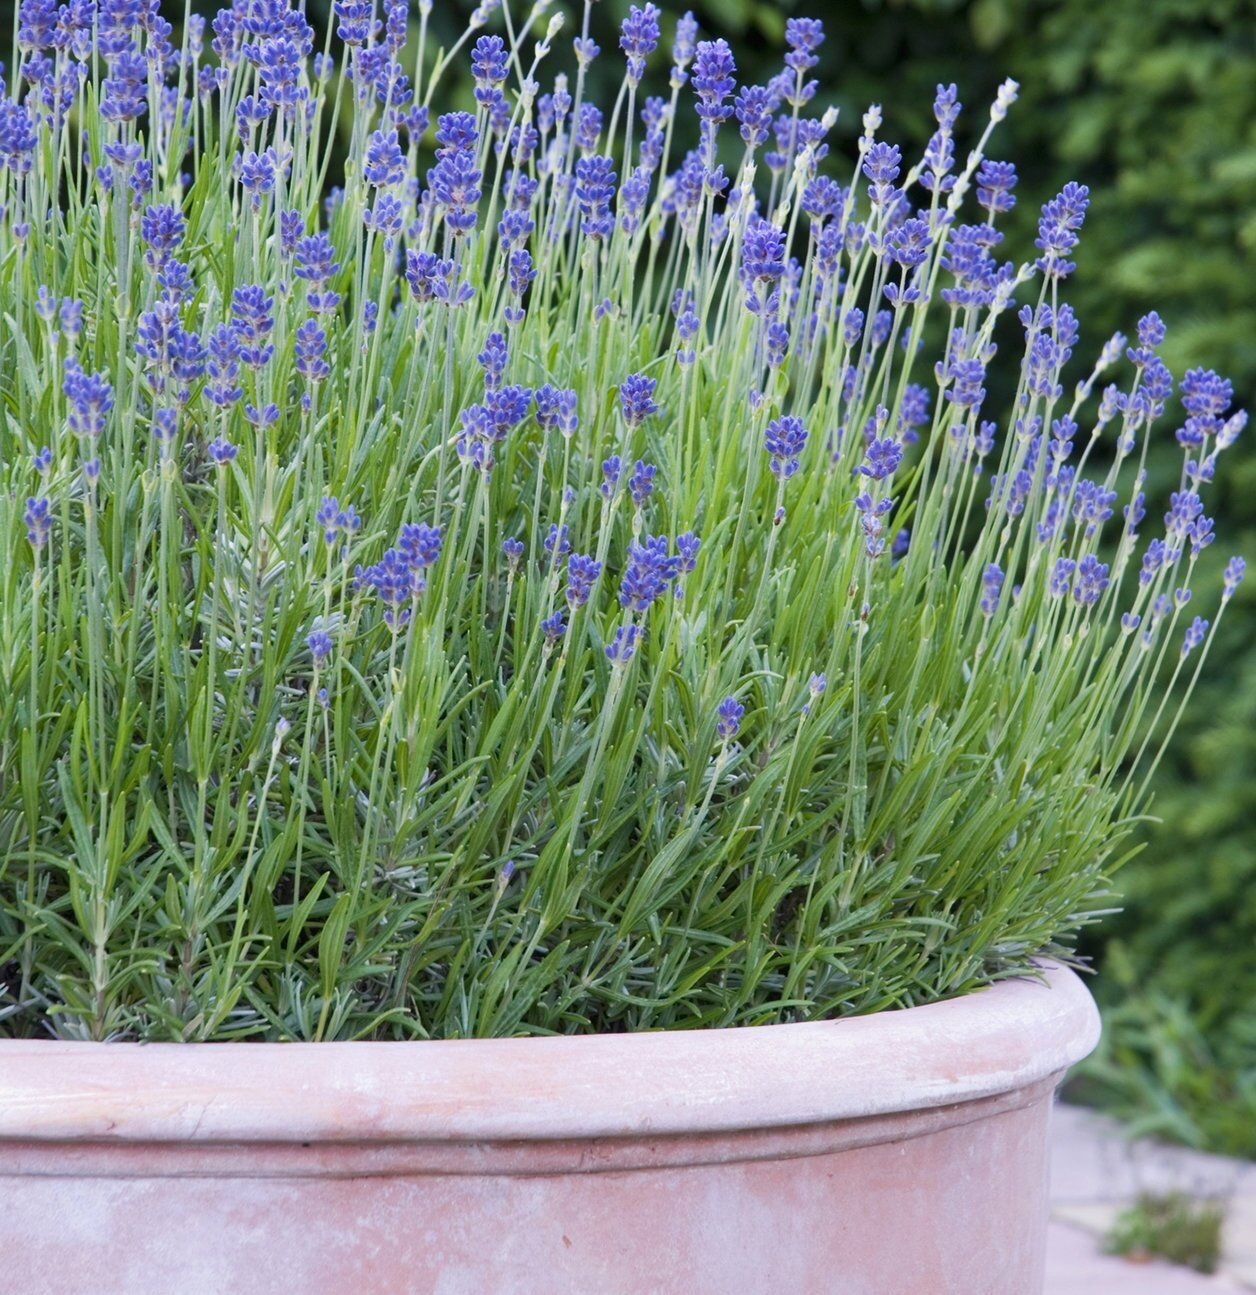 8 Plants That Repel Bugs and Mosquitoes in 2020 Plants